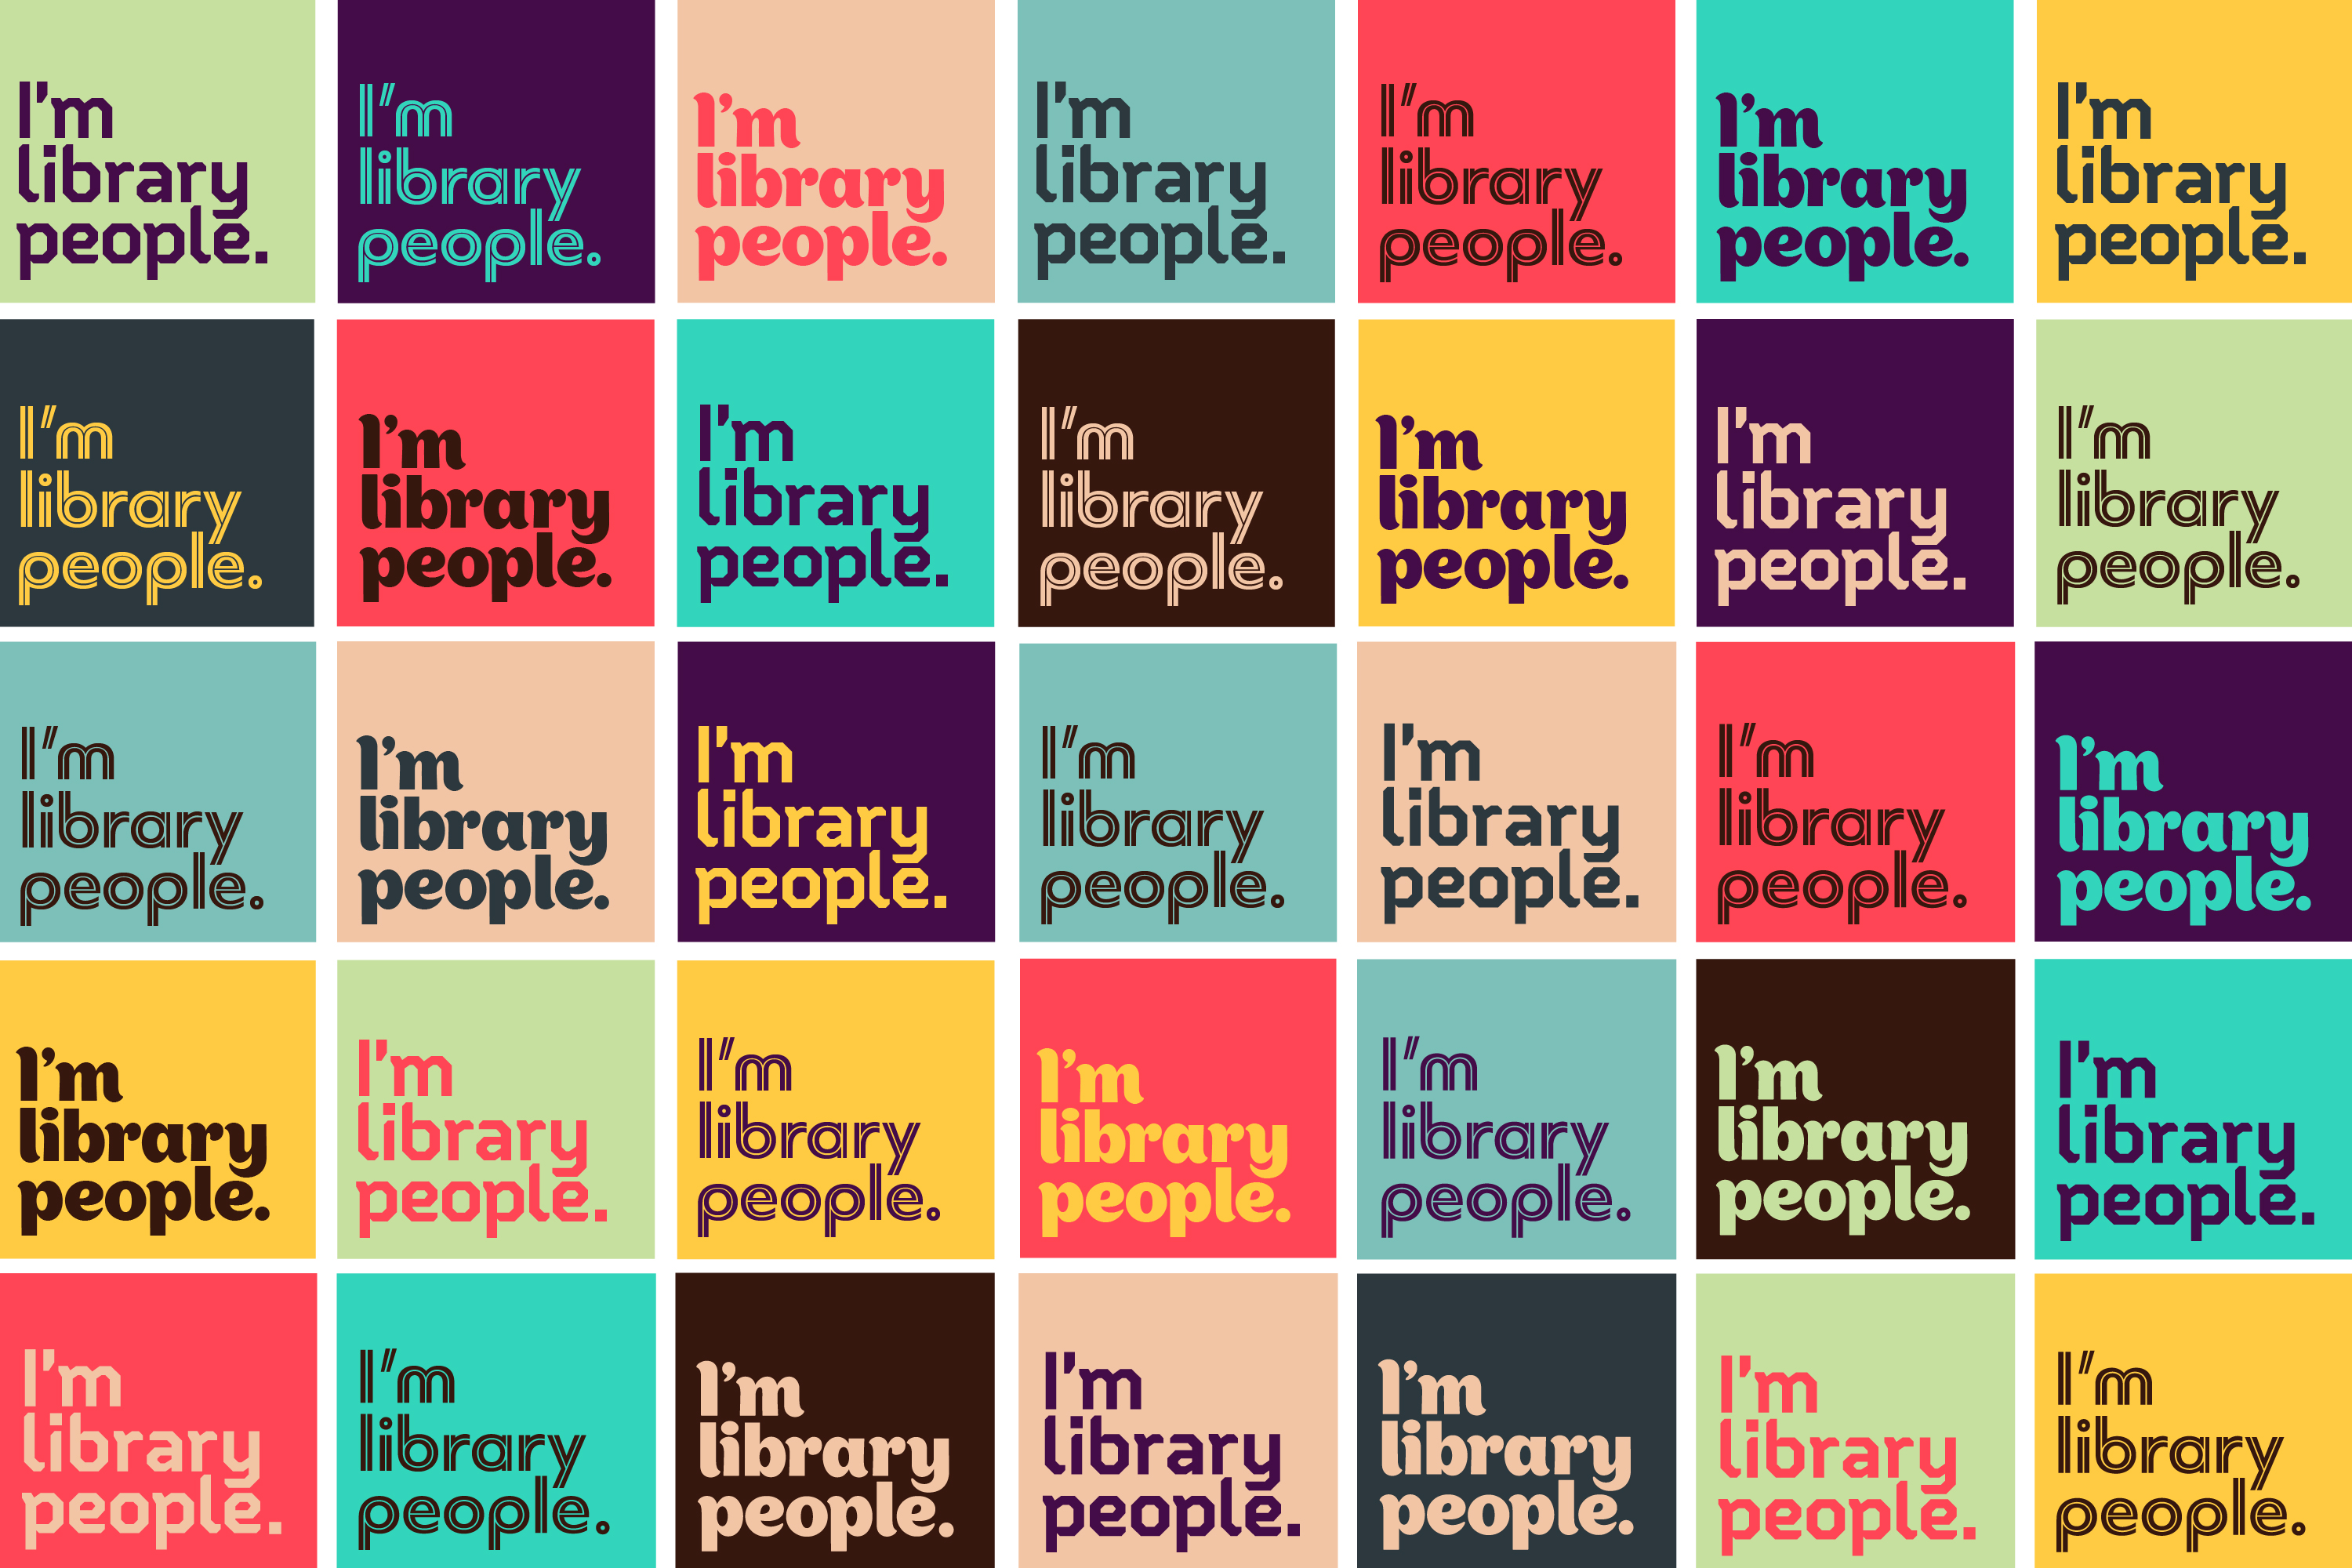 Toronto Public Library Foundation - I'm Library People